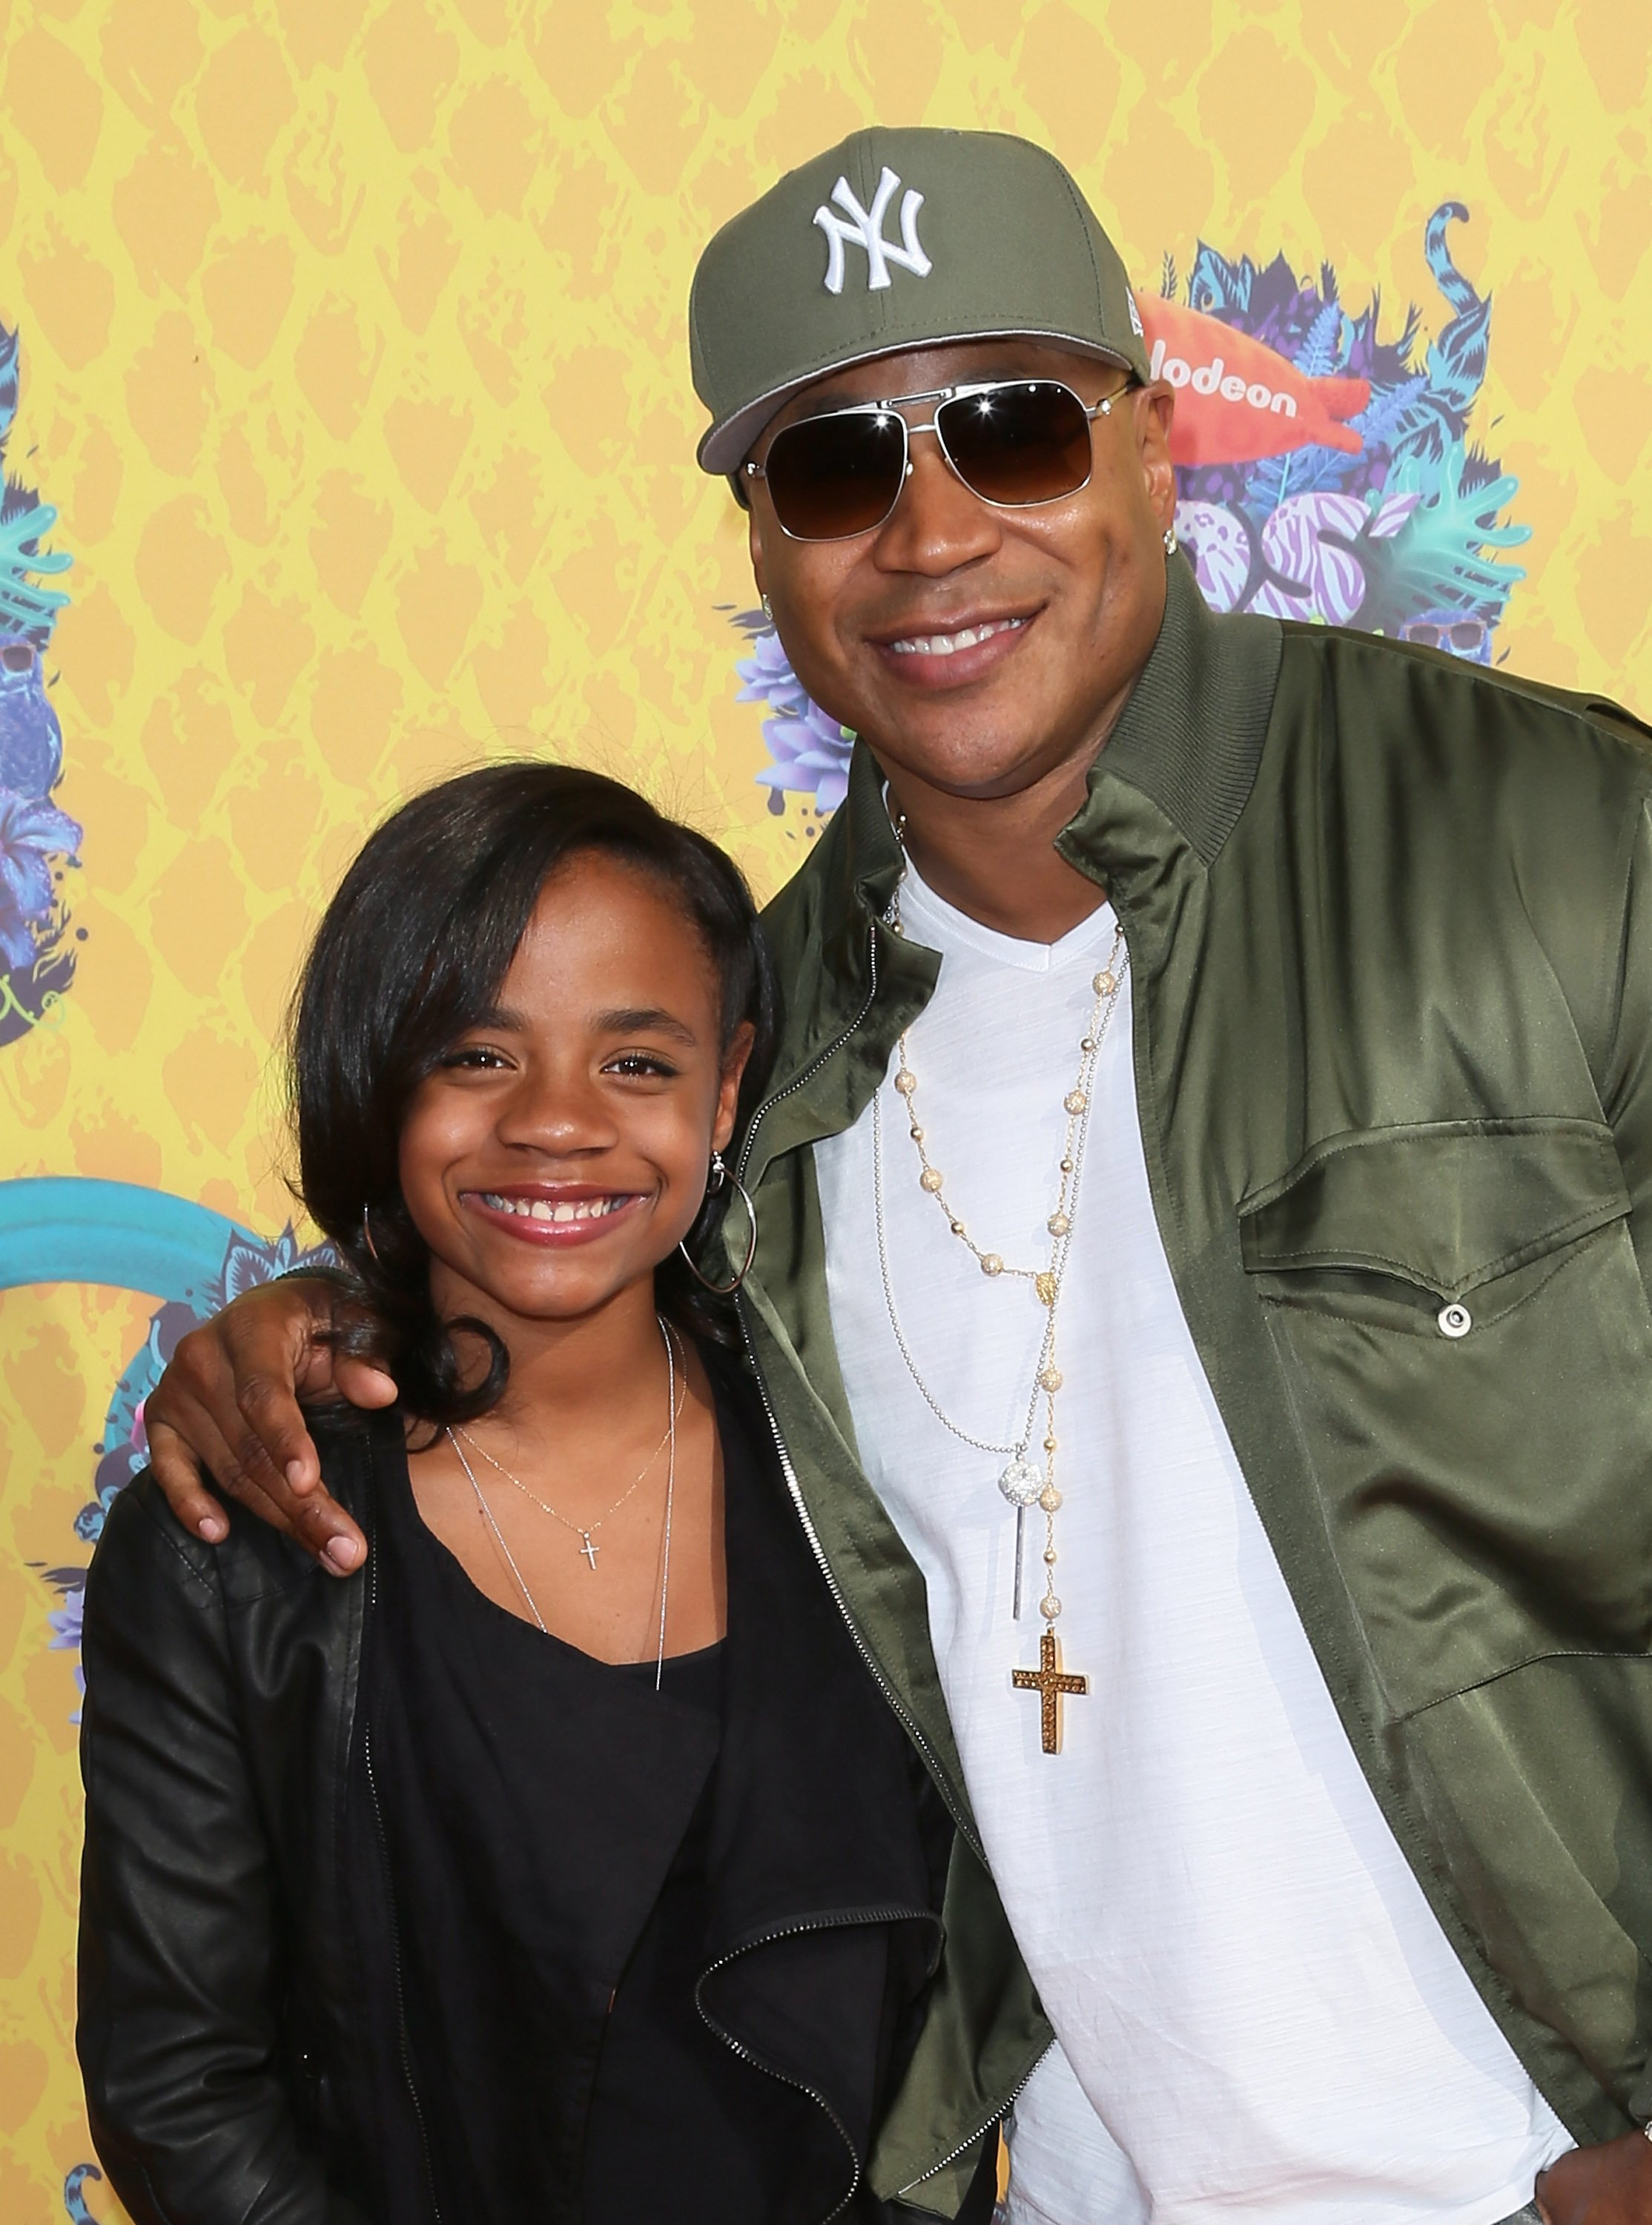 LL Cool J and Nina Symone Smith on March 29, 2014 in Los Angeles, California | Source: Getty Images